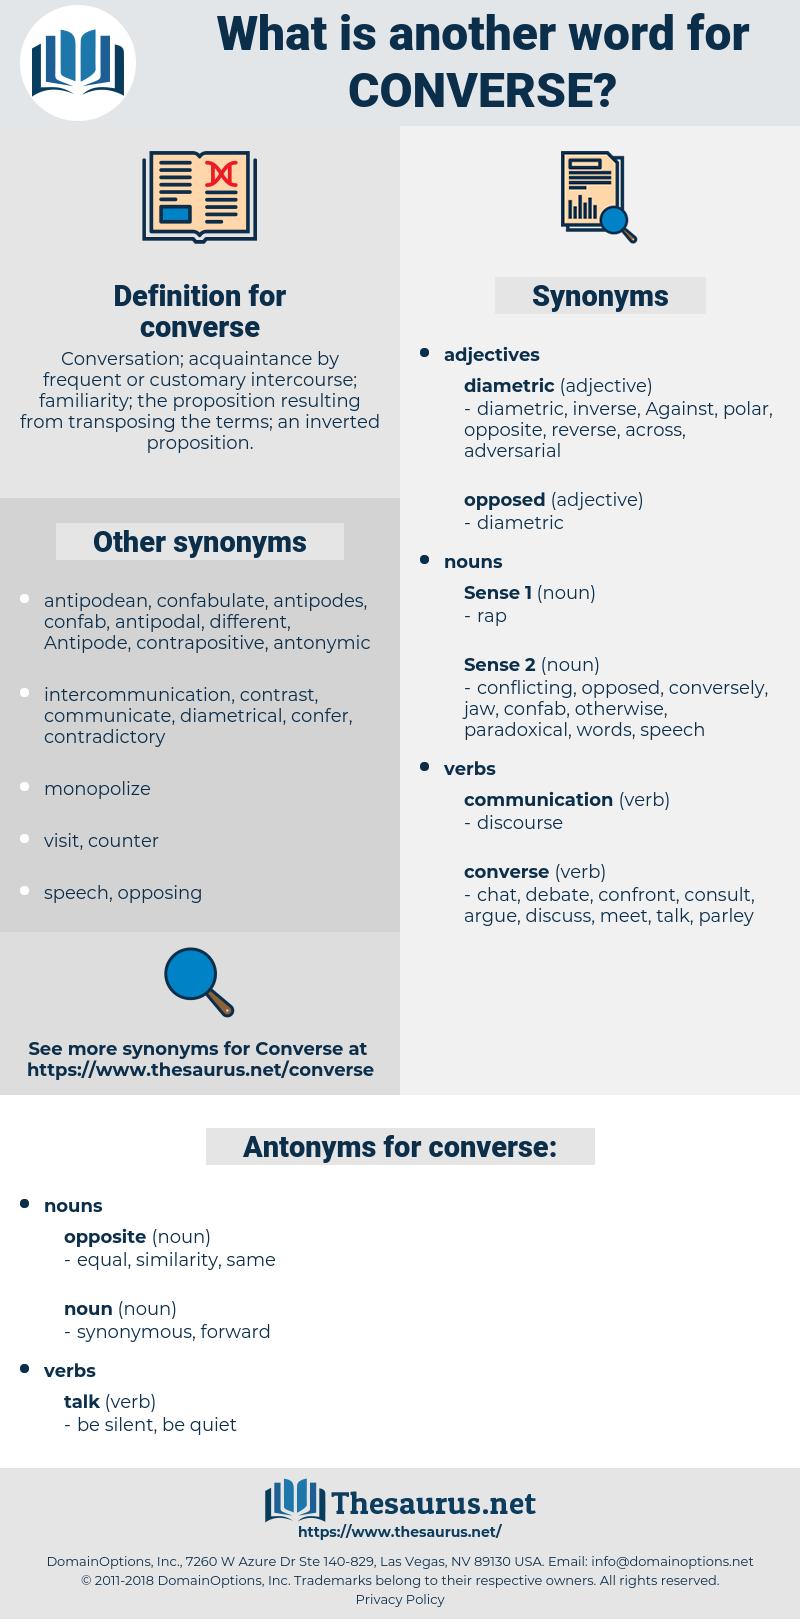 converse, synonym converse, another word for converse, words like converse, thesaurus converse